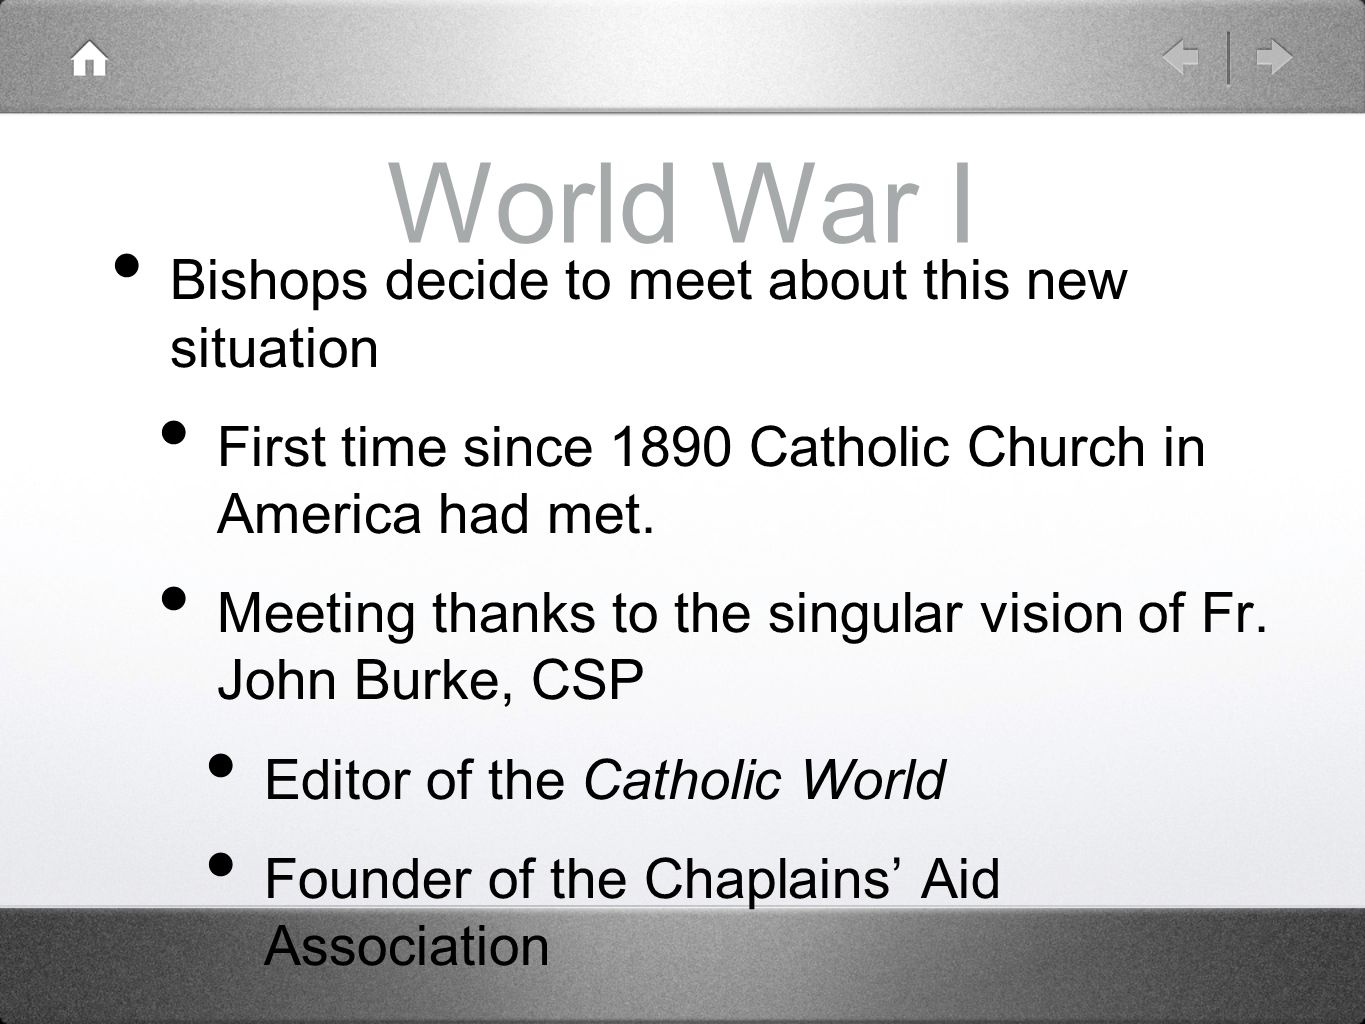 World War I Bishops decide to meet about this new situation